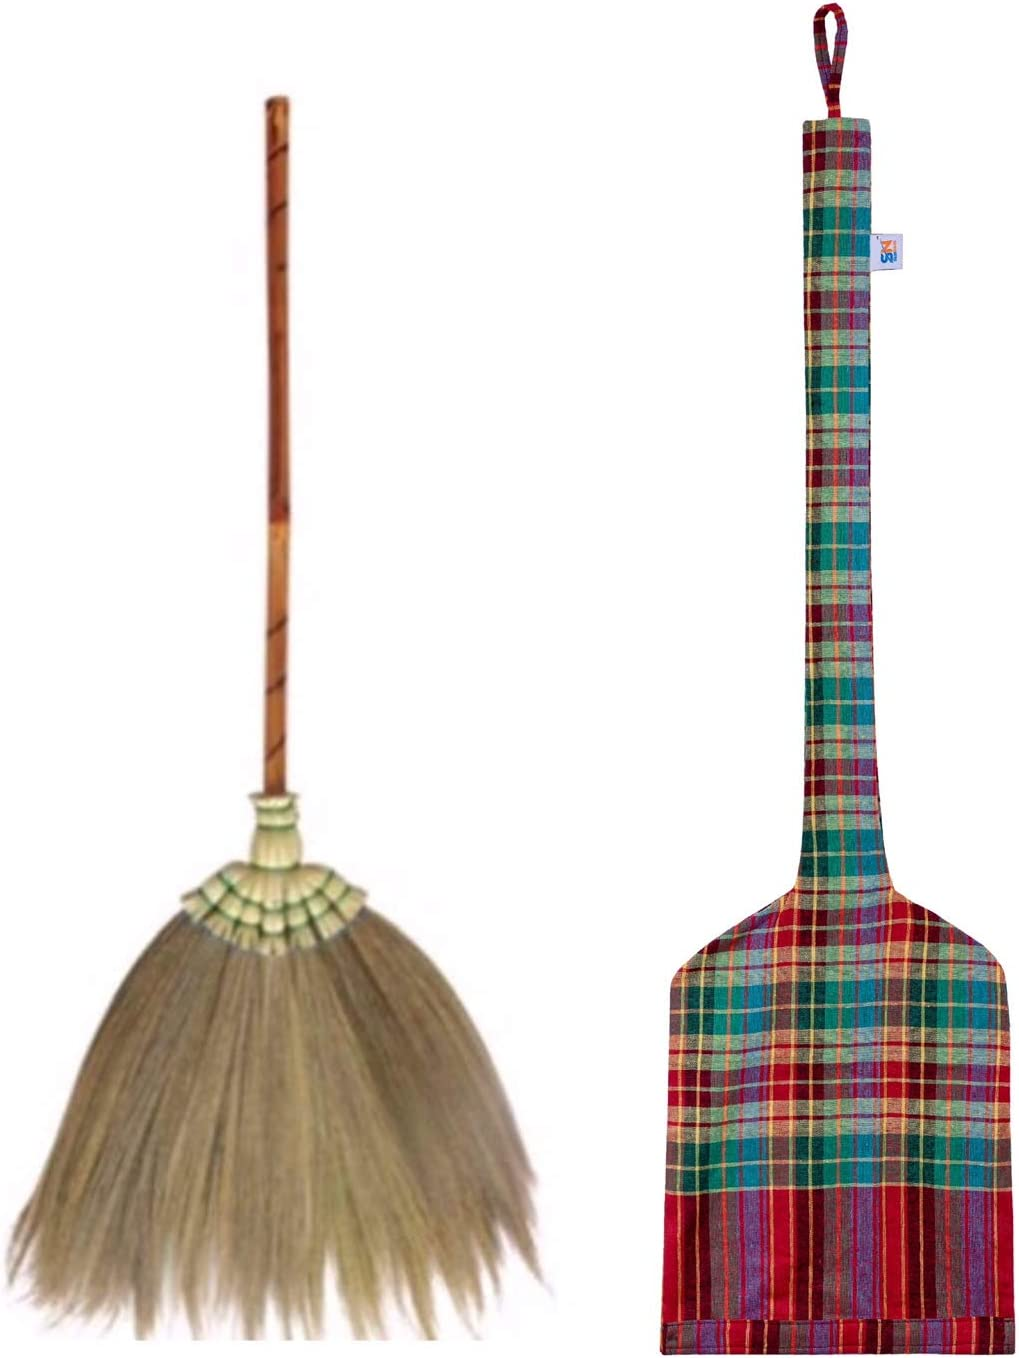 Natural Grass Broom Vintage Retro Made in Thailand, Handmade Broom, Housewarming Gift, Witch Broom, Thai Broom, Broomstick Bamboo Stick Handle, Kong Grass Broom, Durable Broom for Indoor & Outdoor